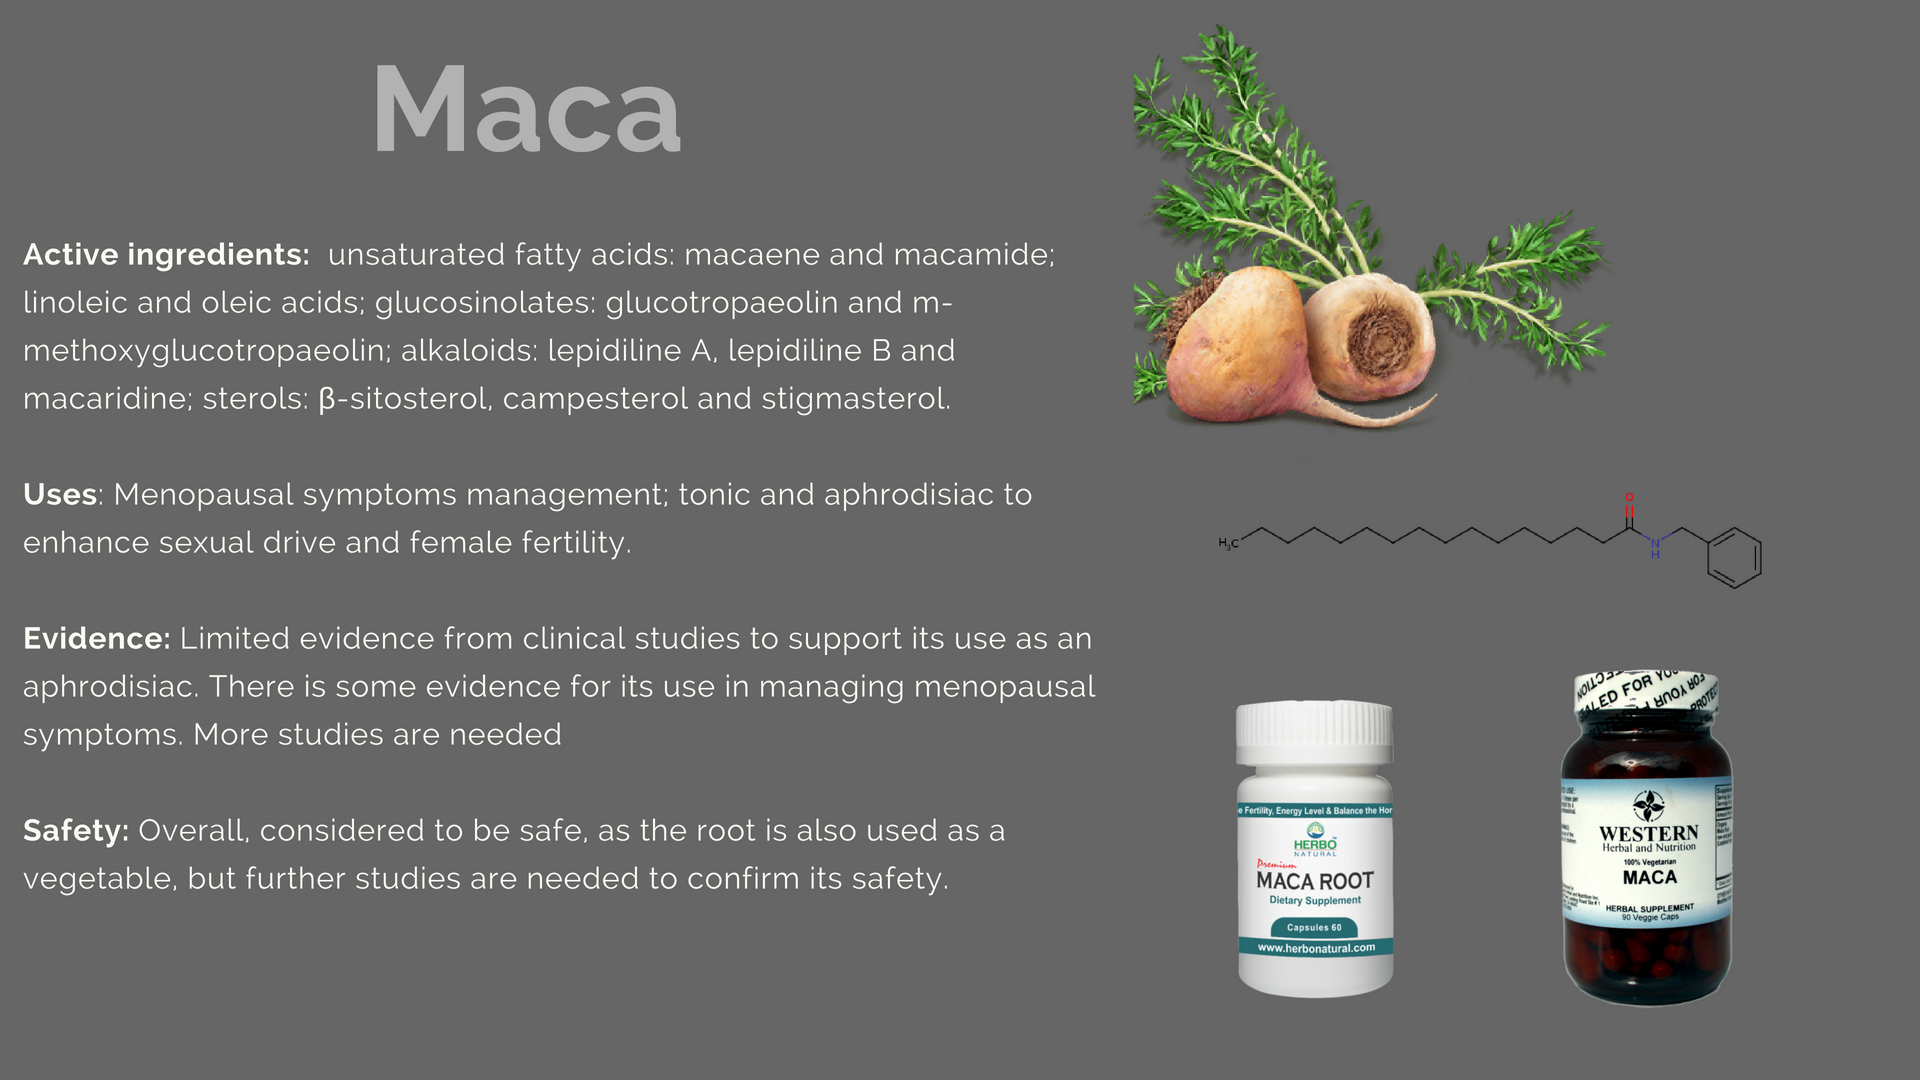 Maca Family Products Uses Evidence Dosage Side